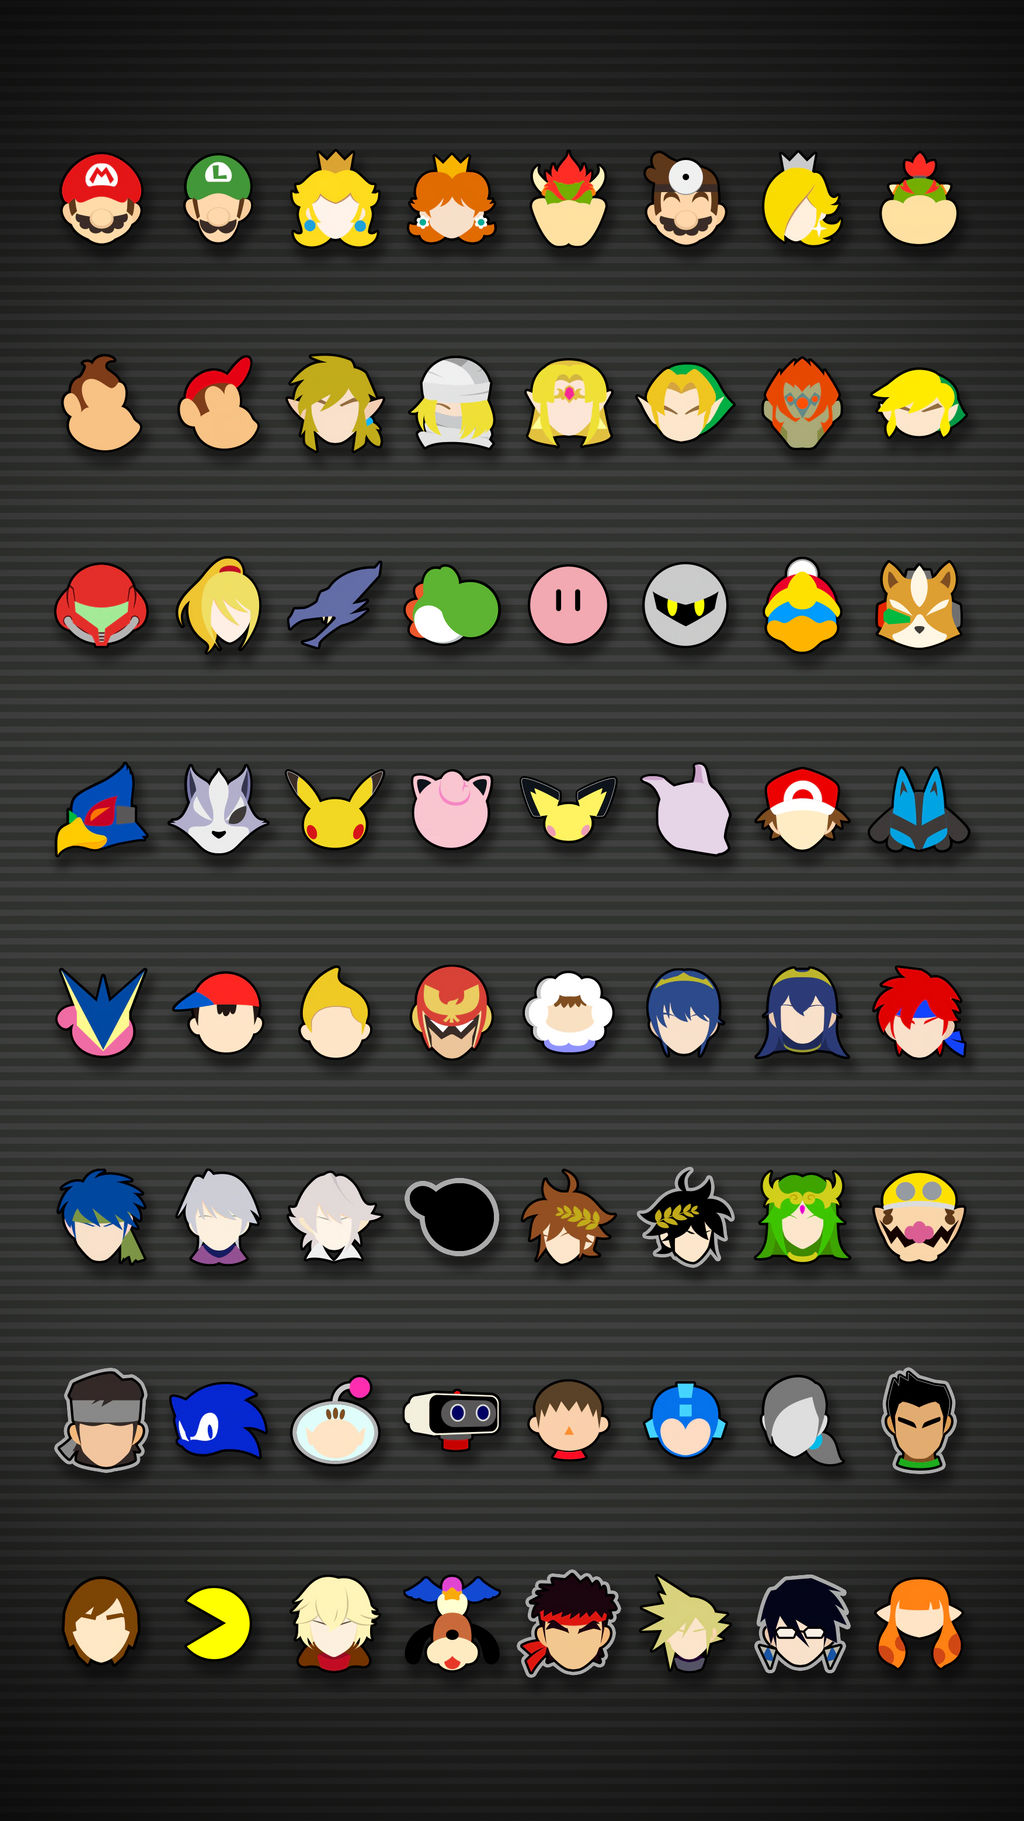 Smash Bros Ultimate Icons Mobile Wallpaper By Kaz Kirigiri On